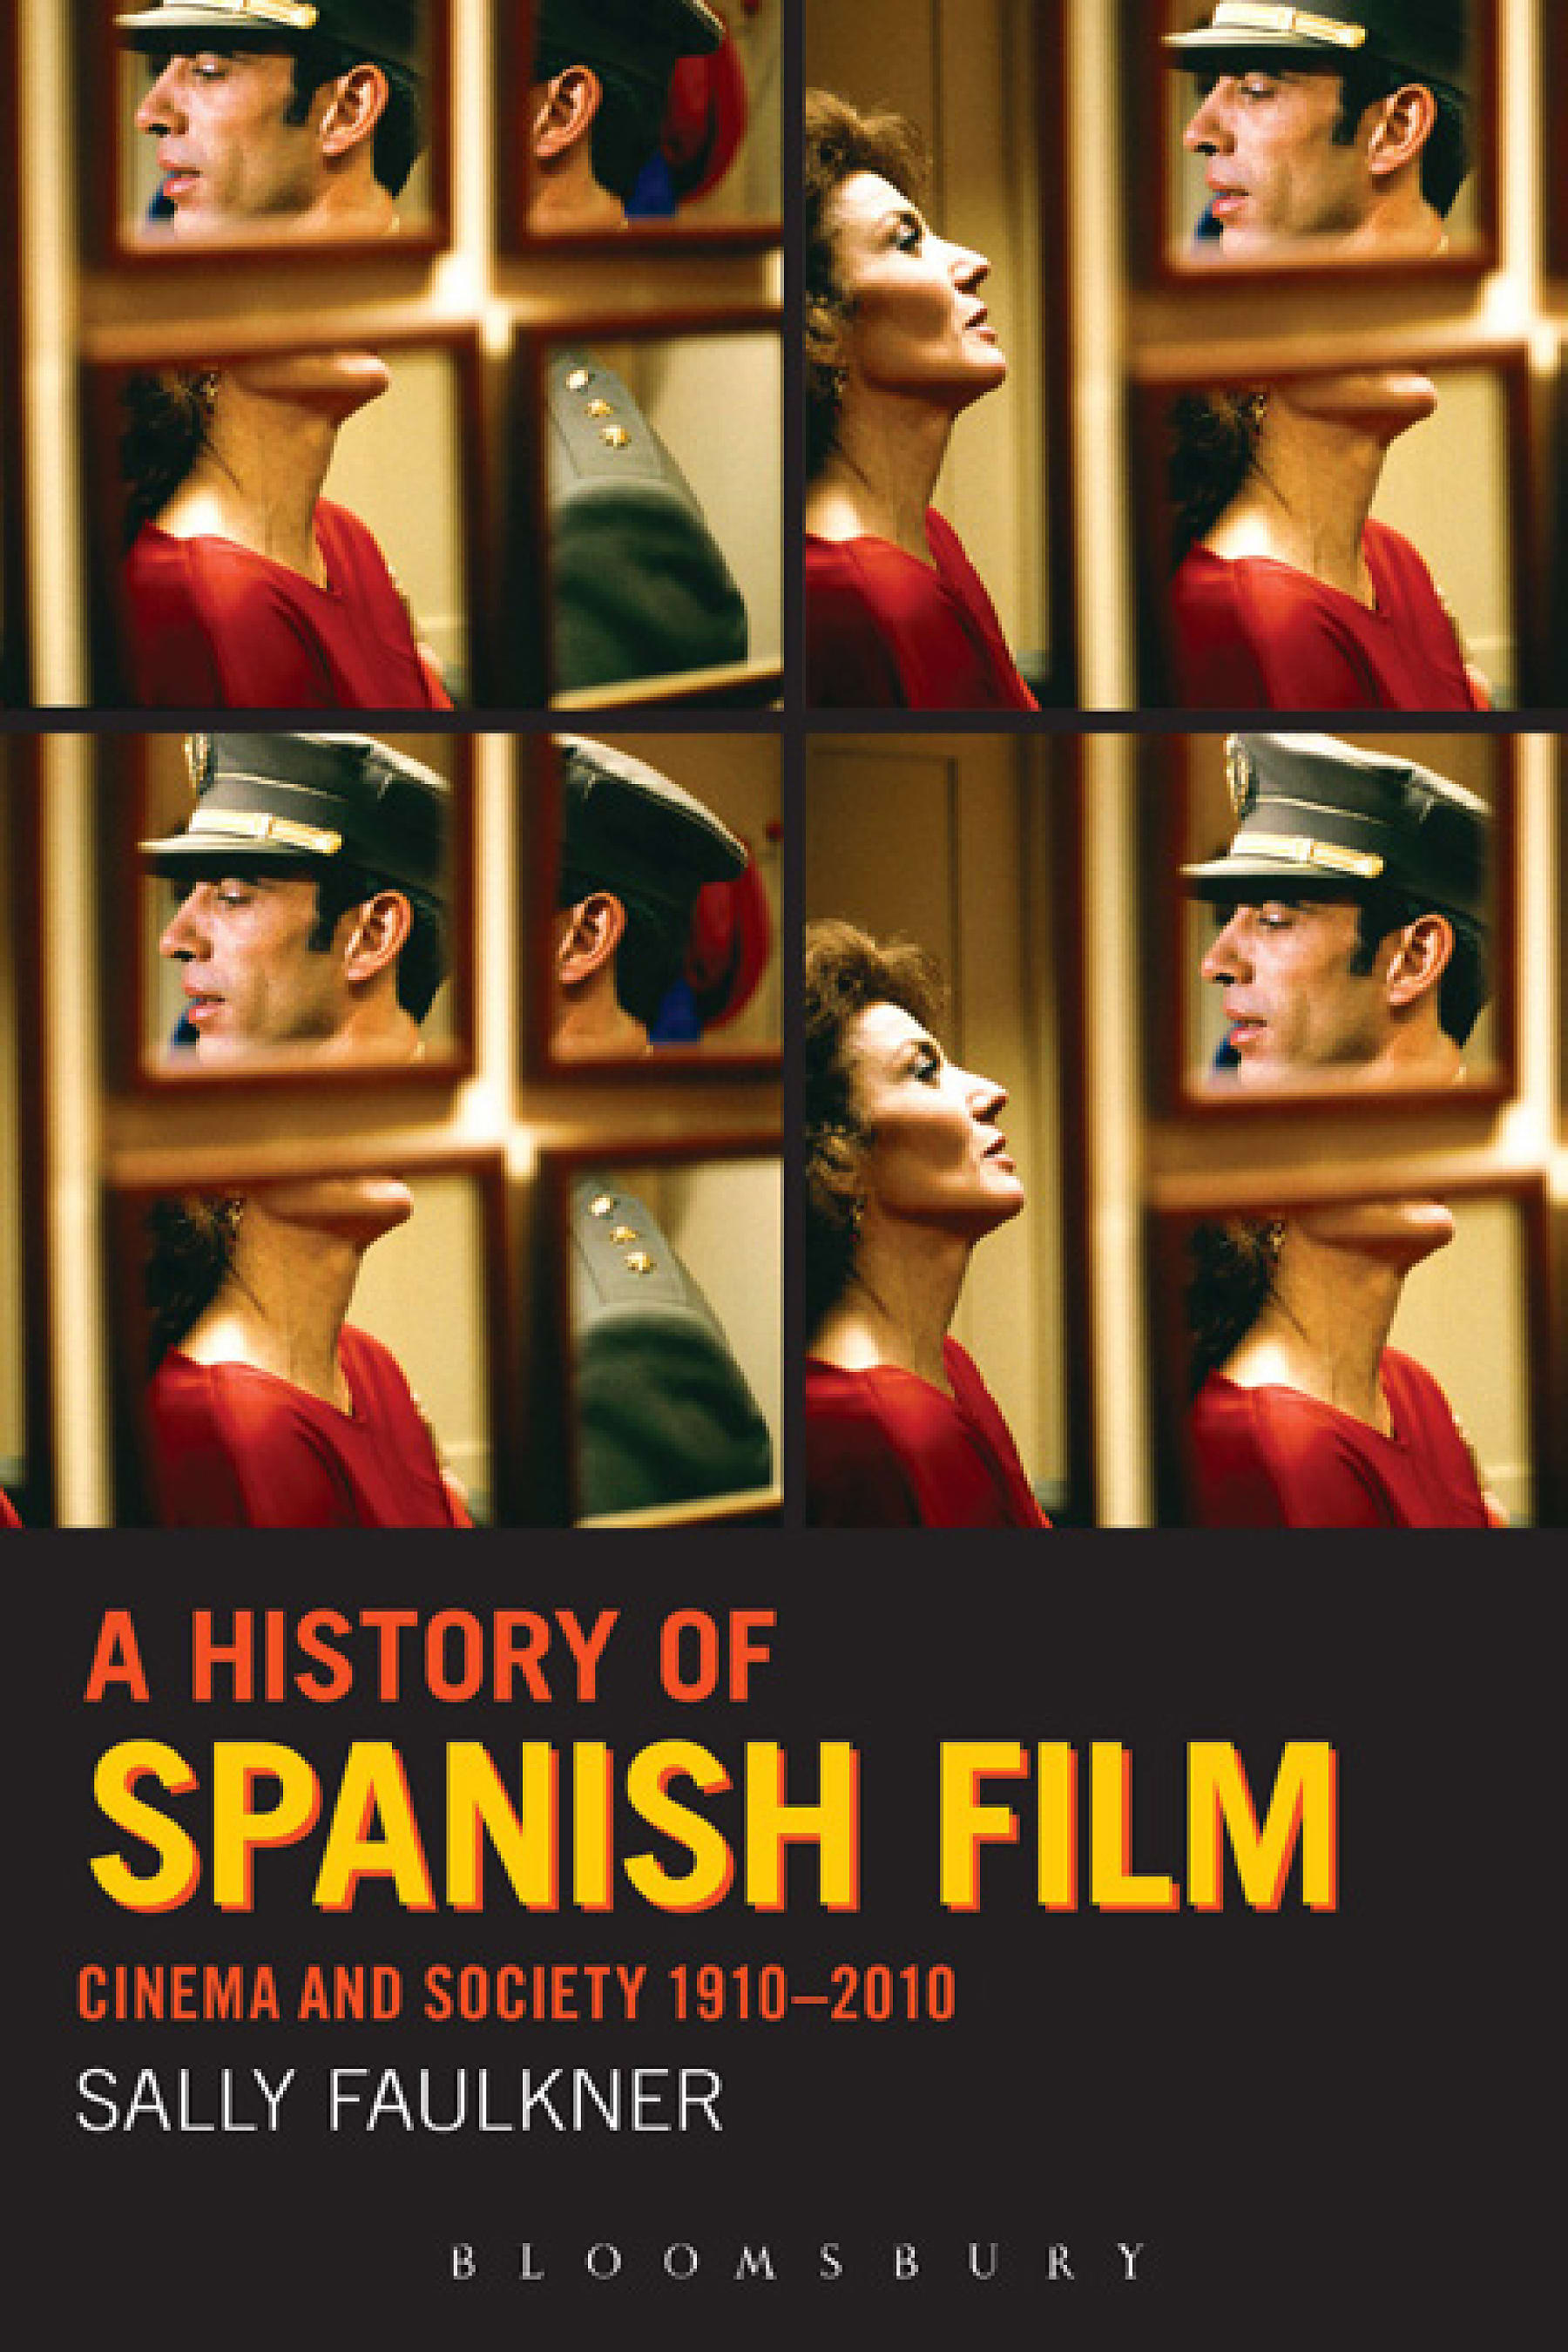 A History of Spanish Film